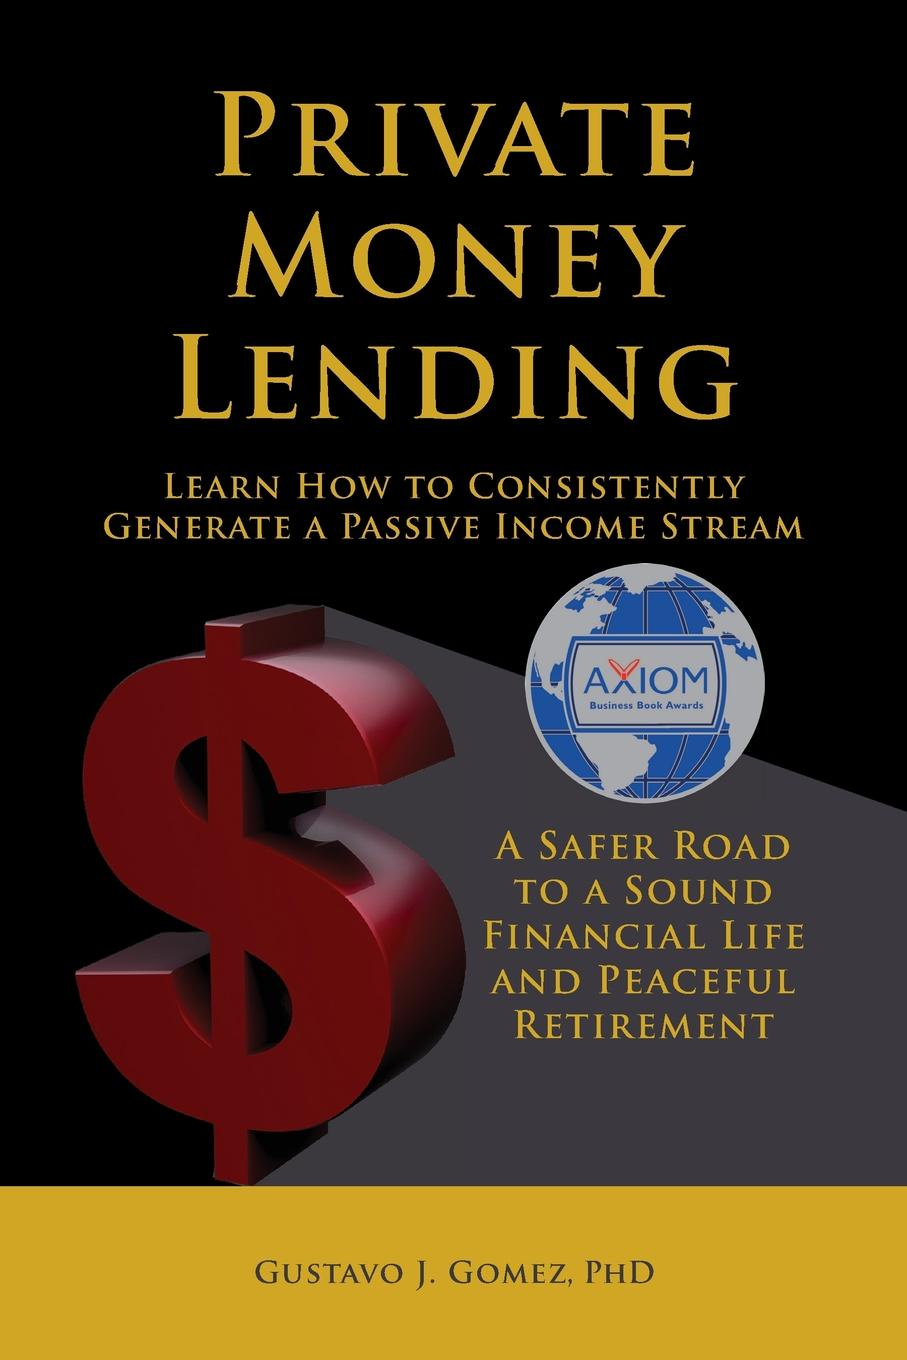 Gustavo J. Gomez Private Money Lending Learn How to Consistently Generate a Passive Income Stream jeffrey hirsch a the little book of stock market cycles